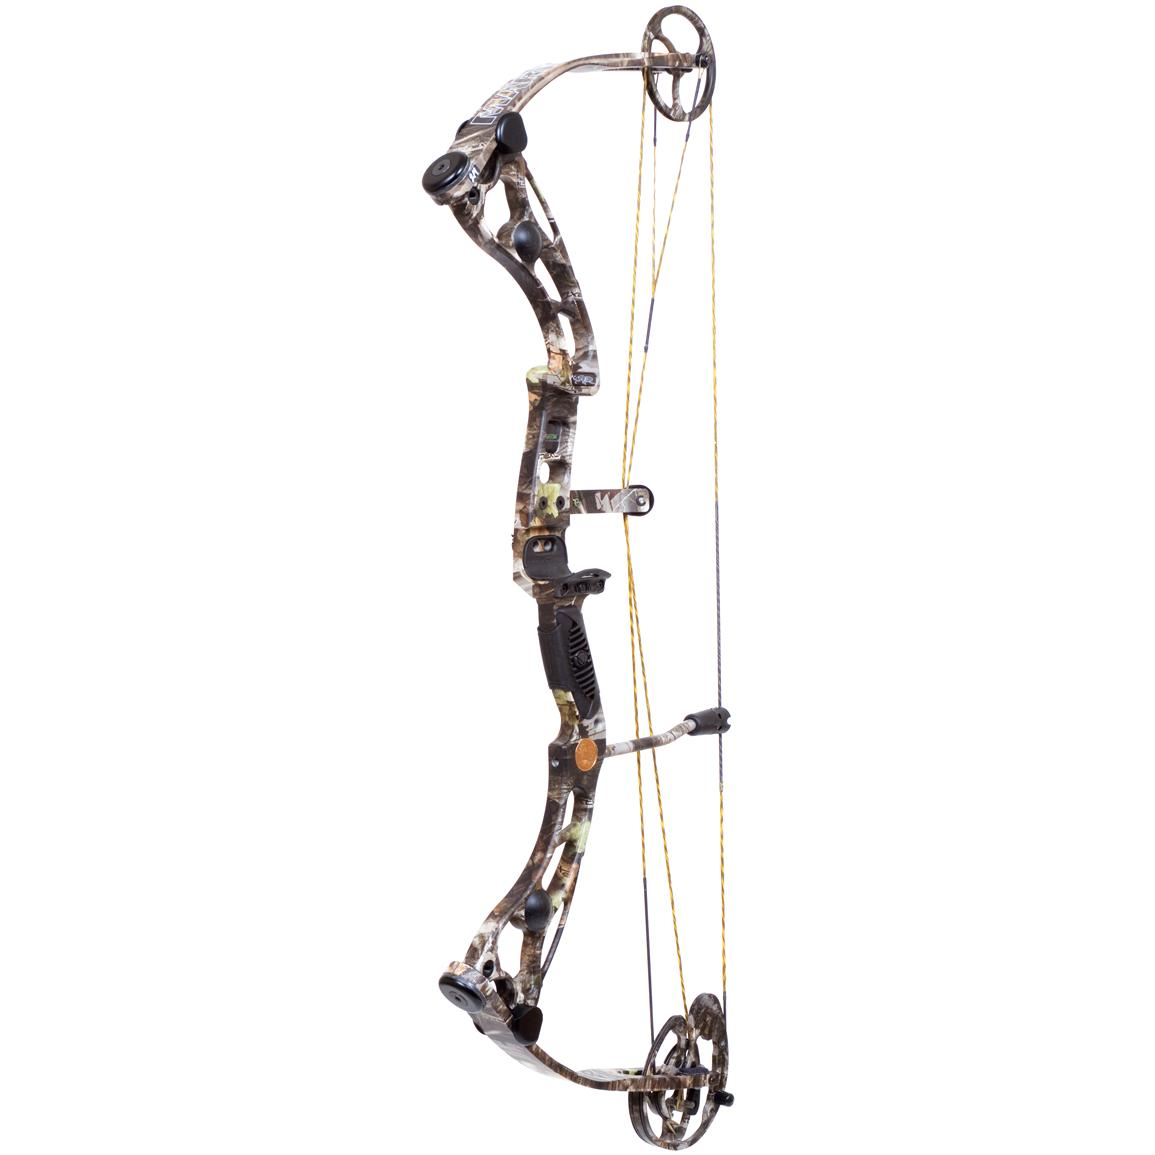 Martin Archery® Pantera A2 Complete Left Hand Compound Bow